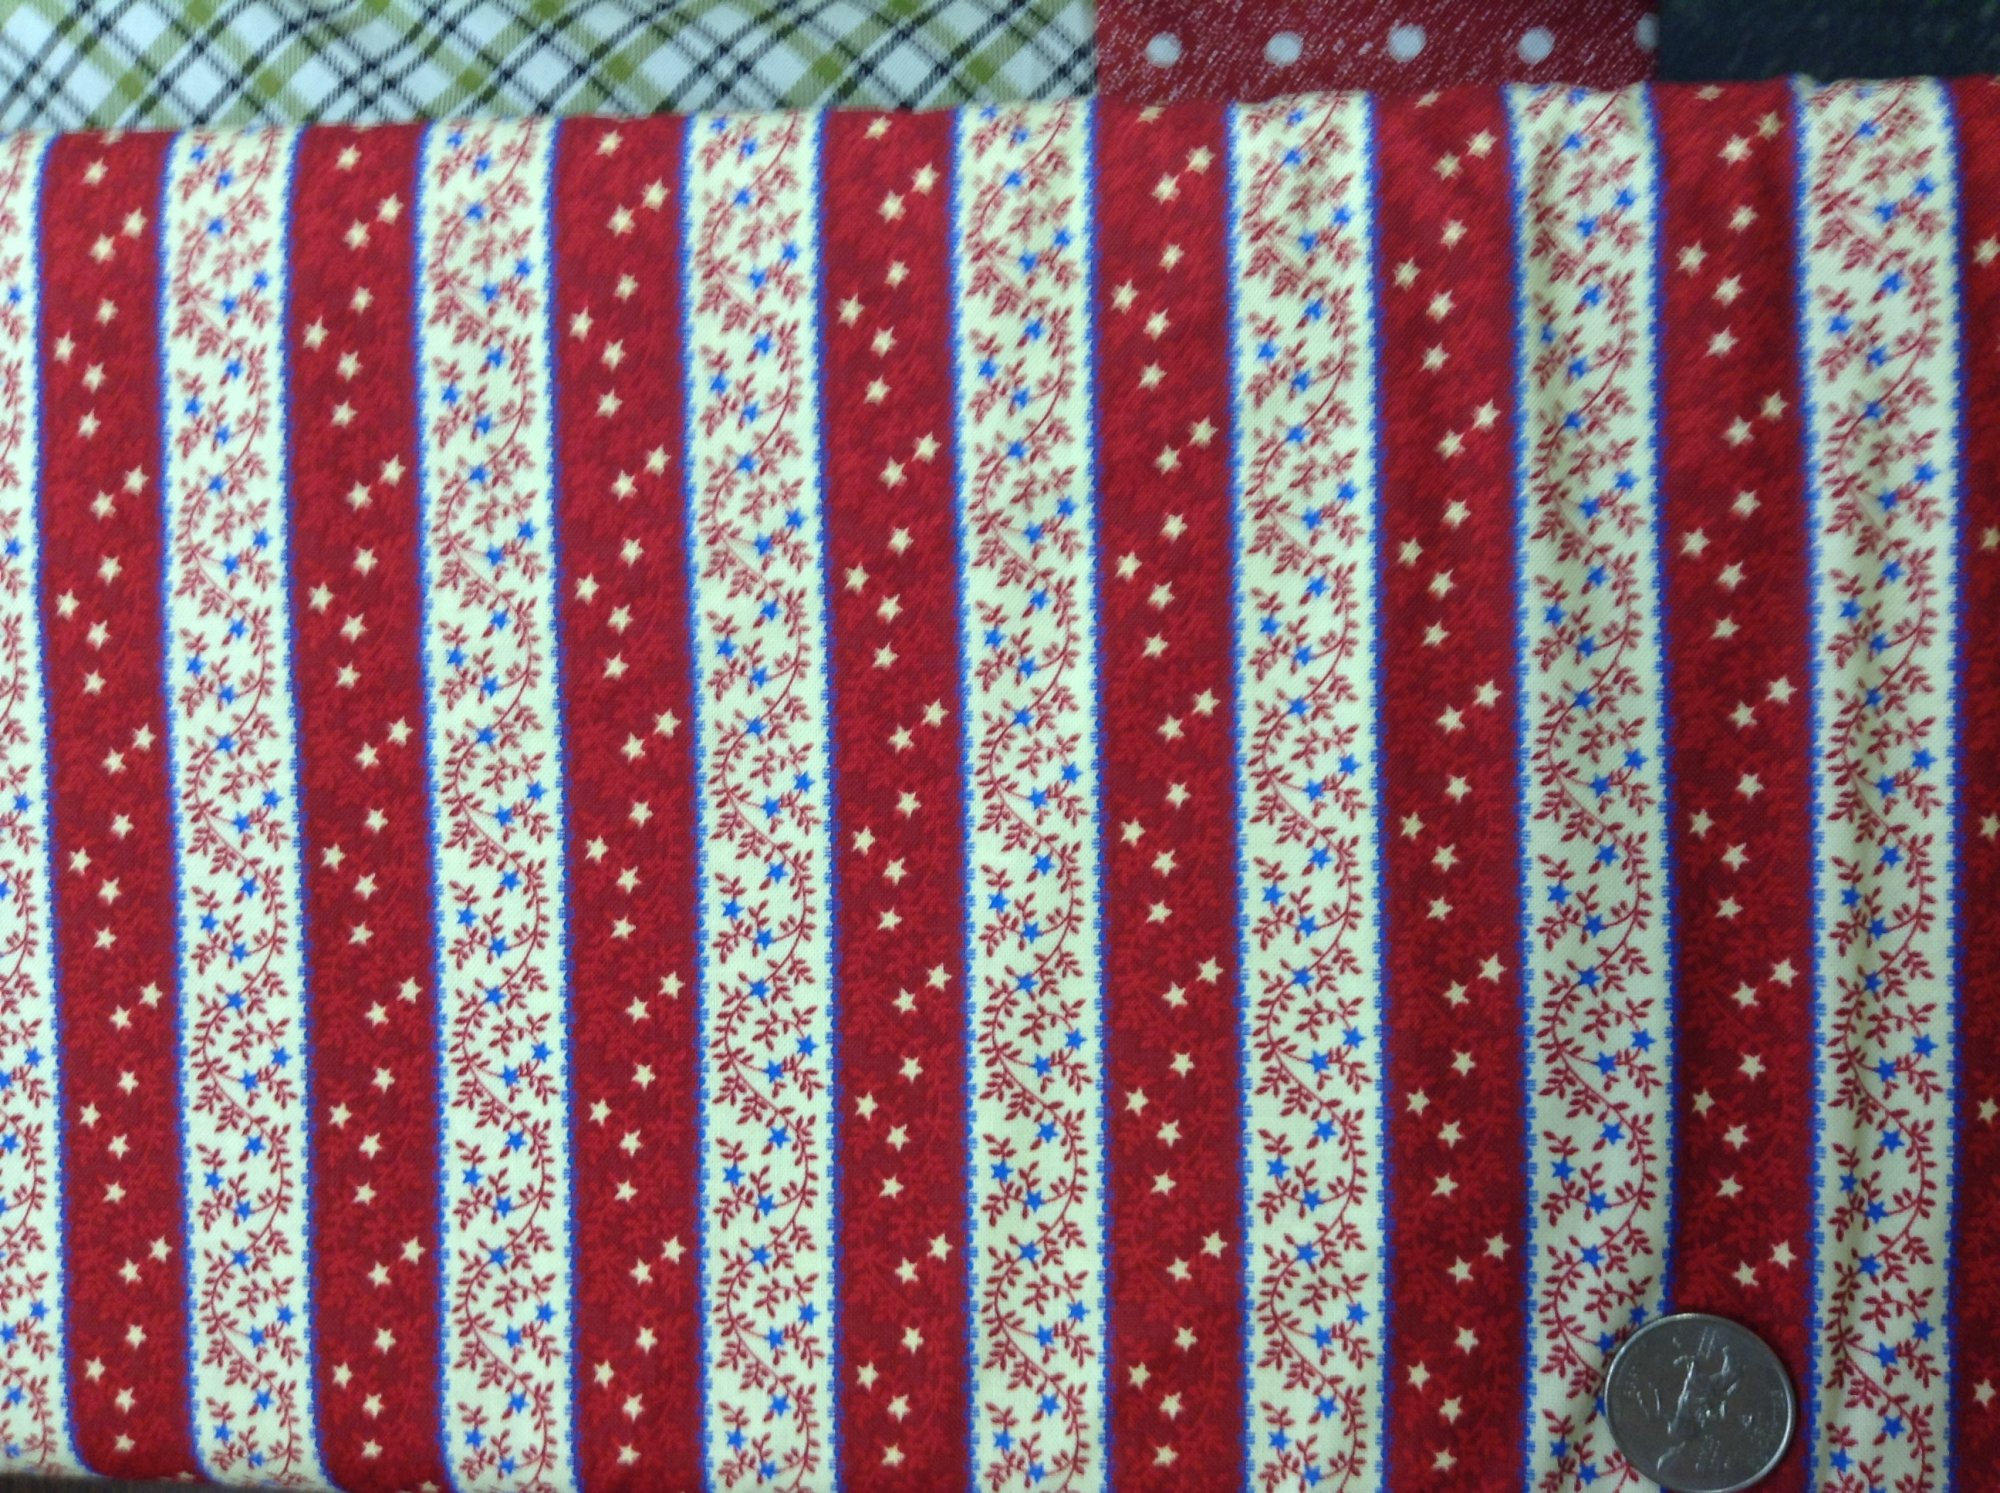 Binding  red, cream and blue